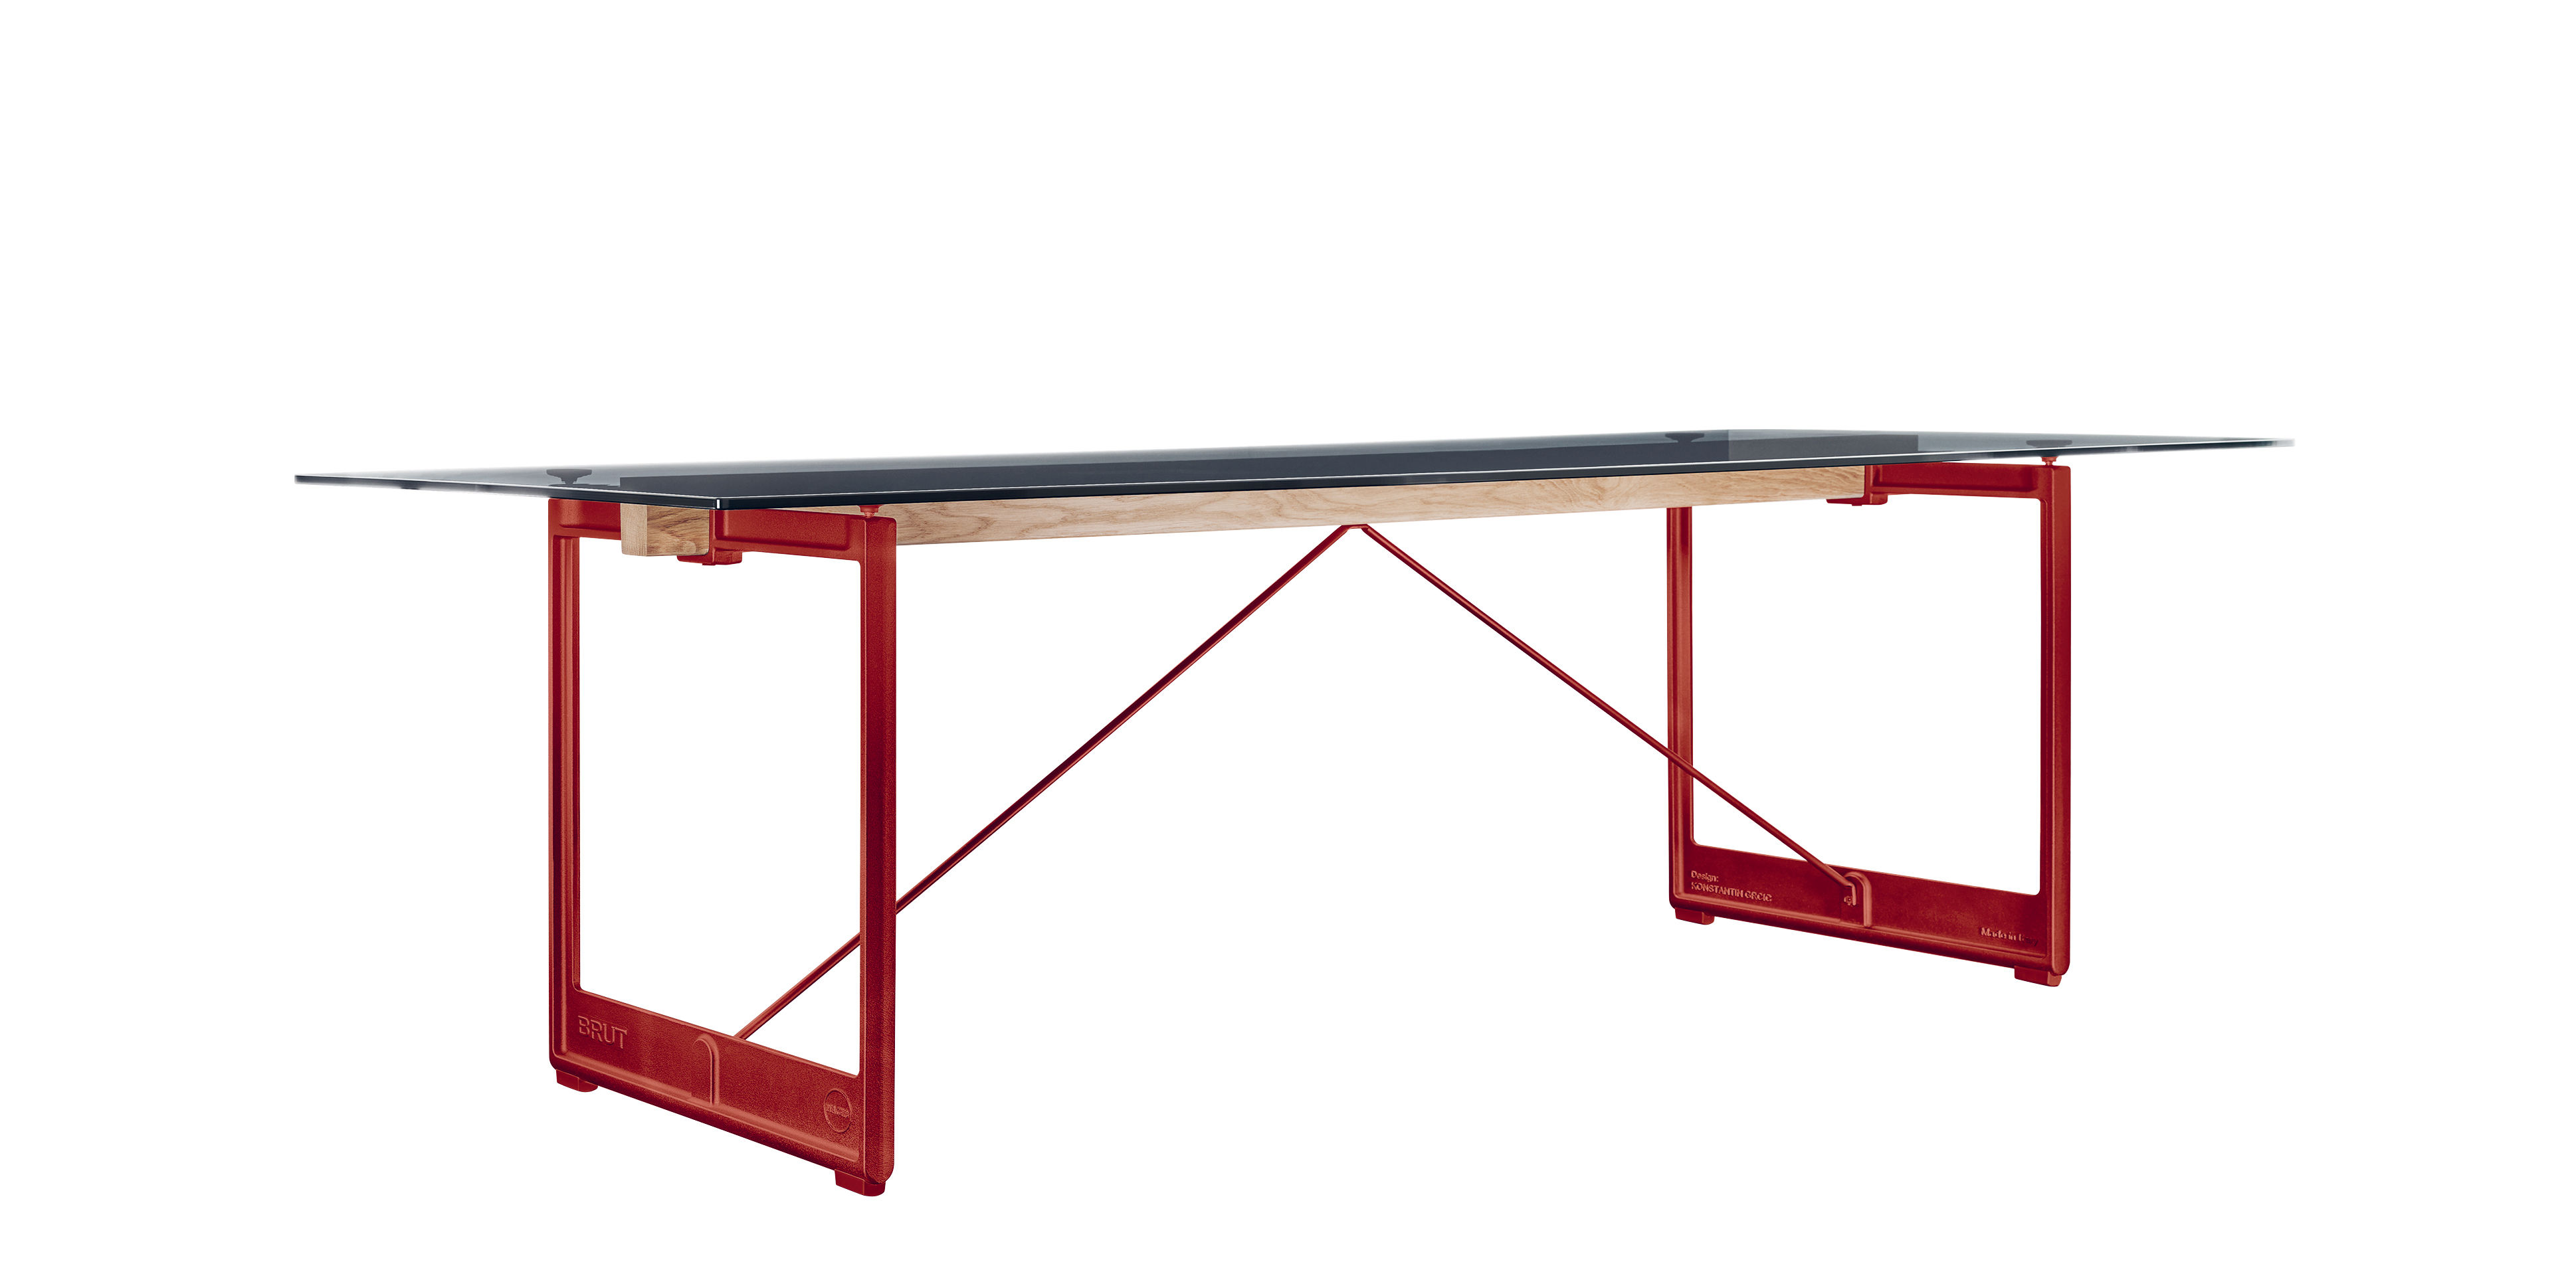 Furniture - Dining Tables - Brut Rectangular table - / L 205 x 85 cm by Magis - Smoked grey / Red base - Cast iron, Soak glass, Solid oak